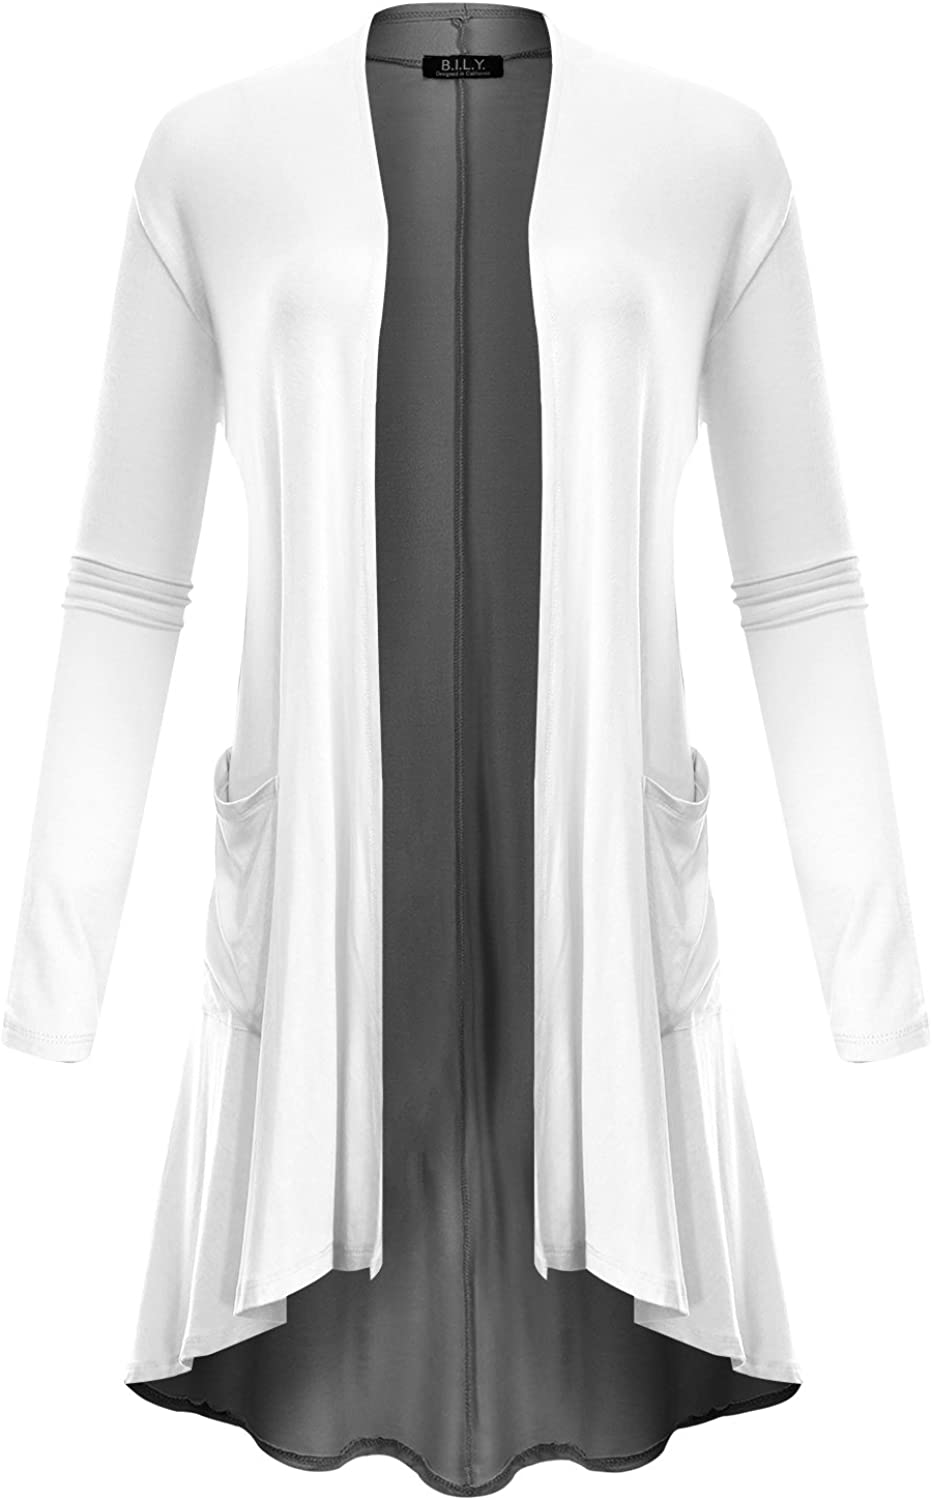 BH B.I.L.Y USA Women's Open Front HighLow Long Sleeve Front Pockets Cardigan White Medium